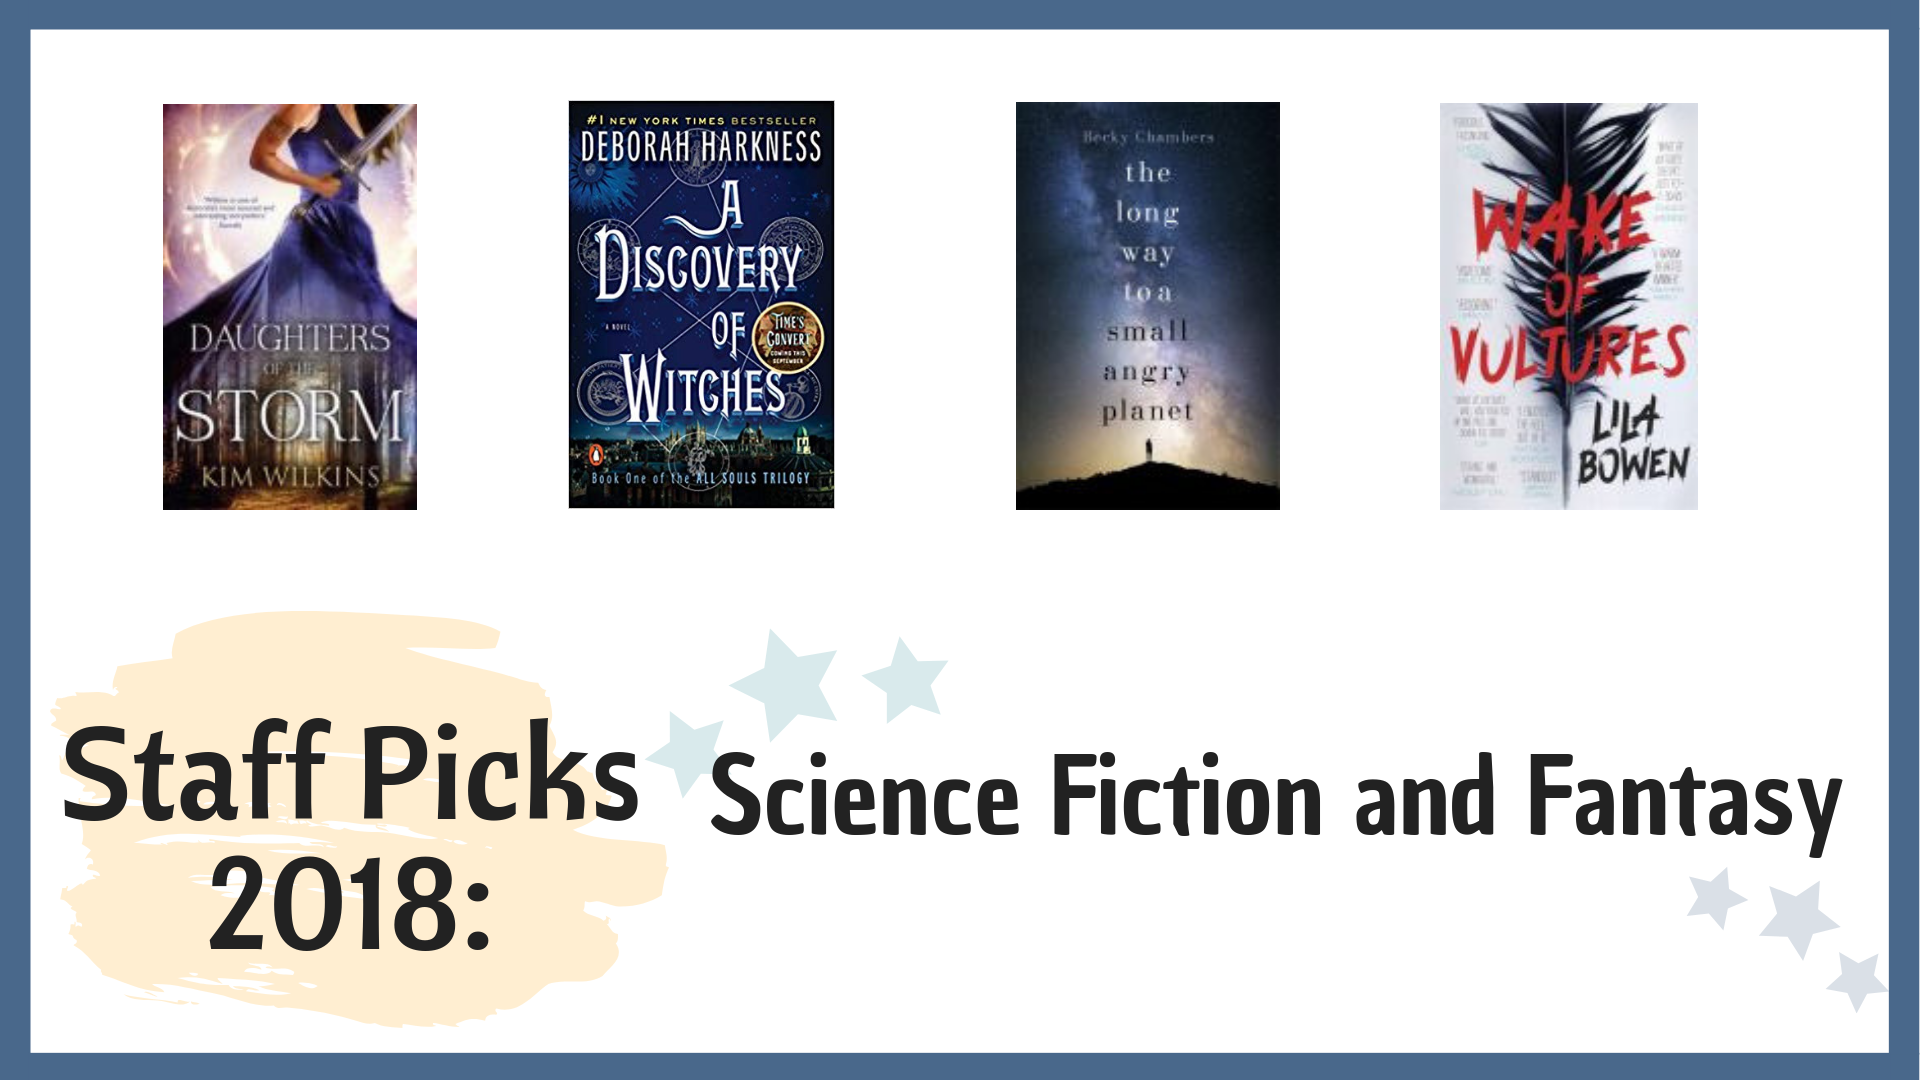 Staff Picks 2018 Sci Fi & Fantasy